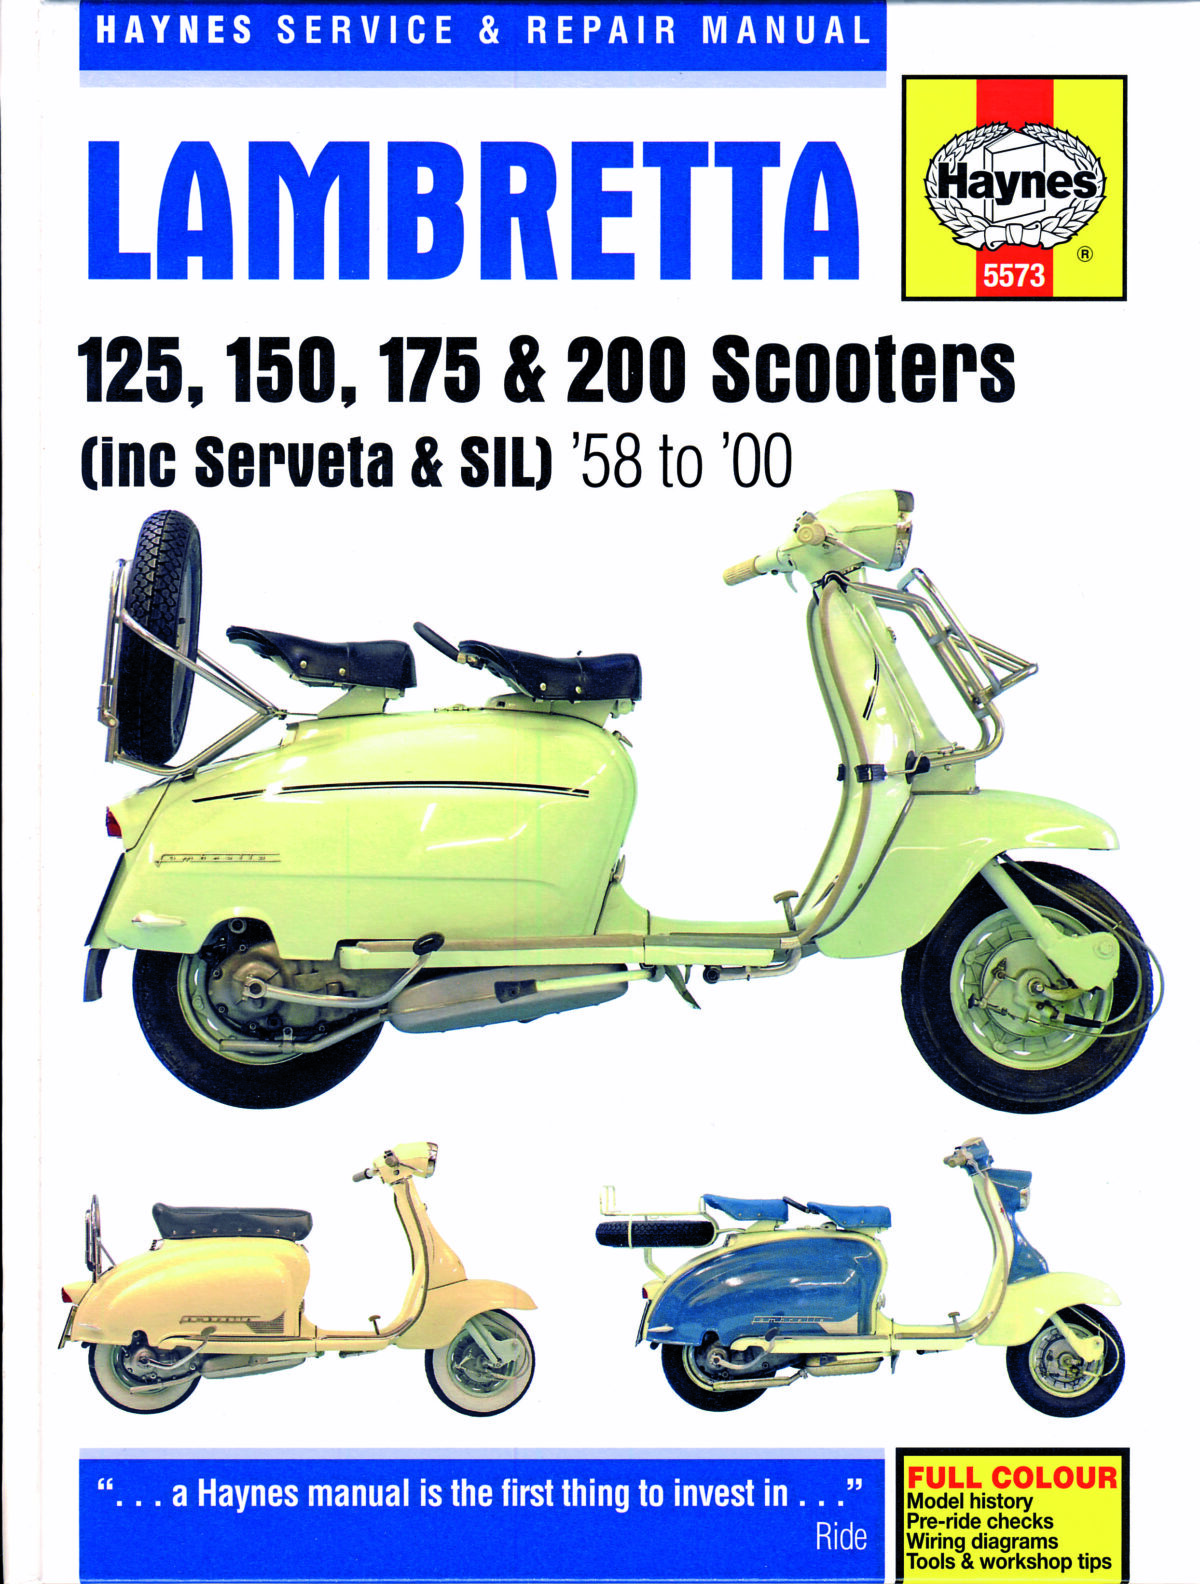 Haynes Service And Repair Manual For Lambretta Scooters